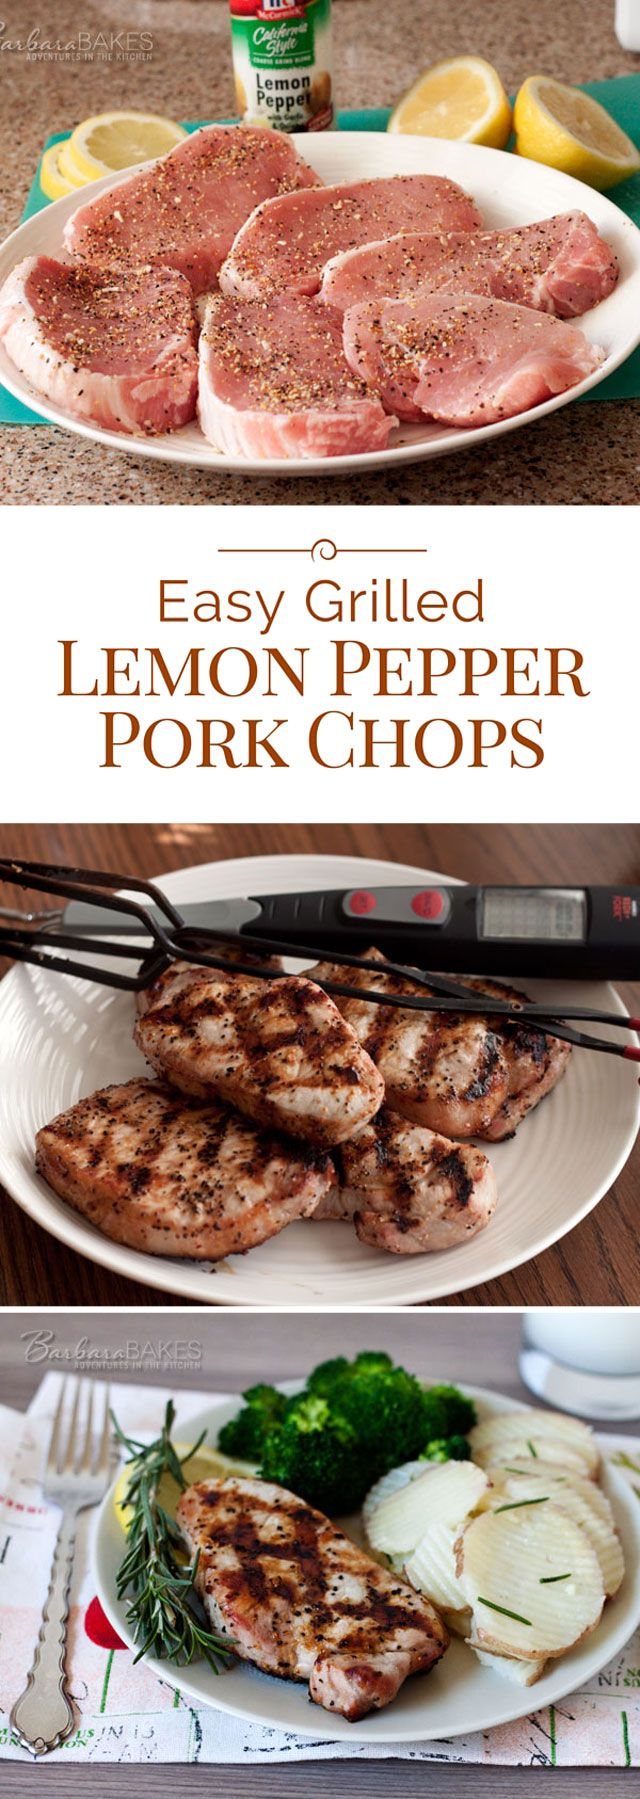 A Perfectly Grilled Boneless Pork Chop Seasoned Simply With Lemon Pepper,  Lemon Juice And Olive